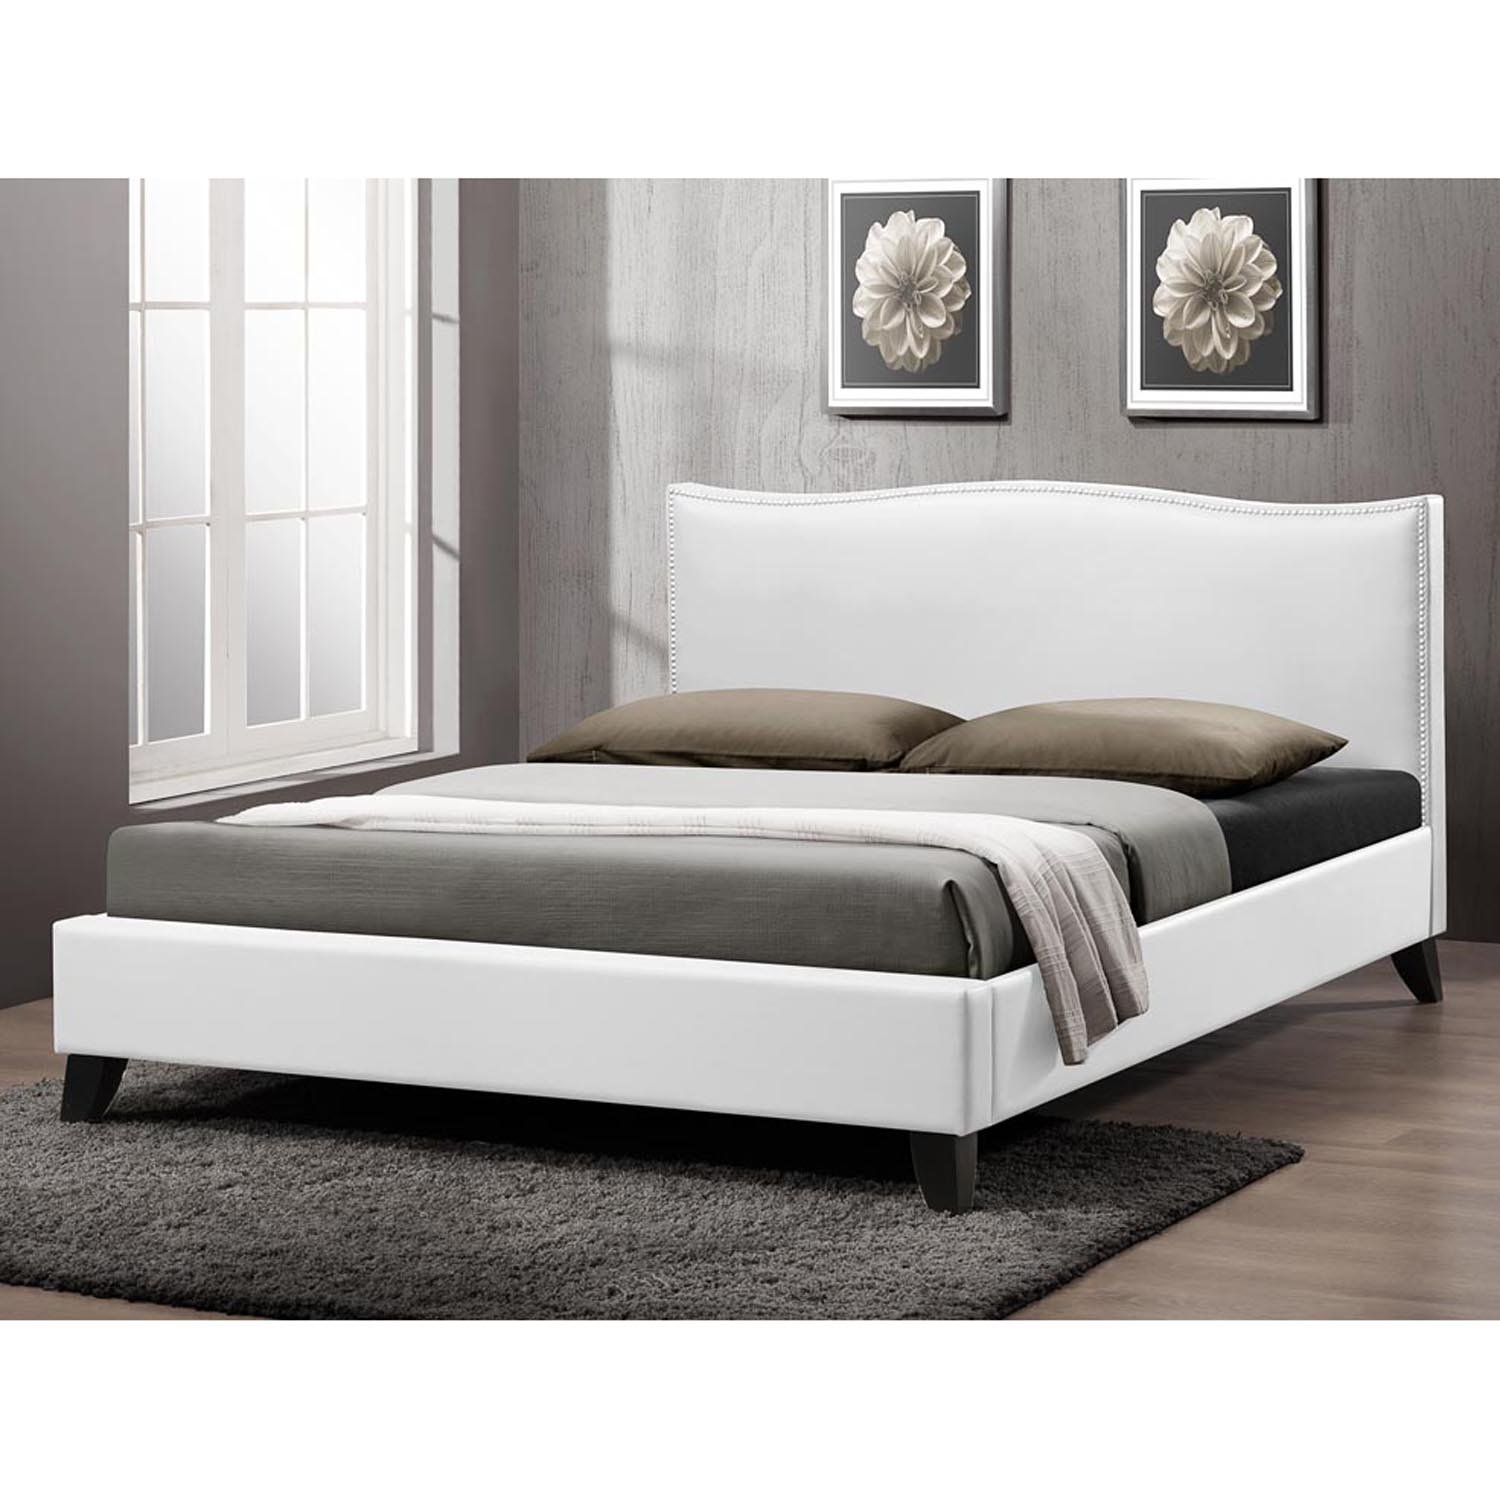 Amazon com baxton studio battersby modern bed with upholstered headboard queen white kitchen dining